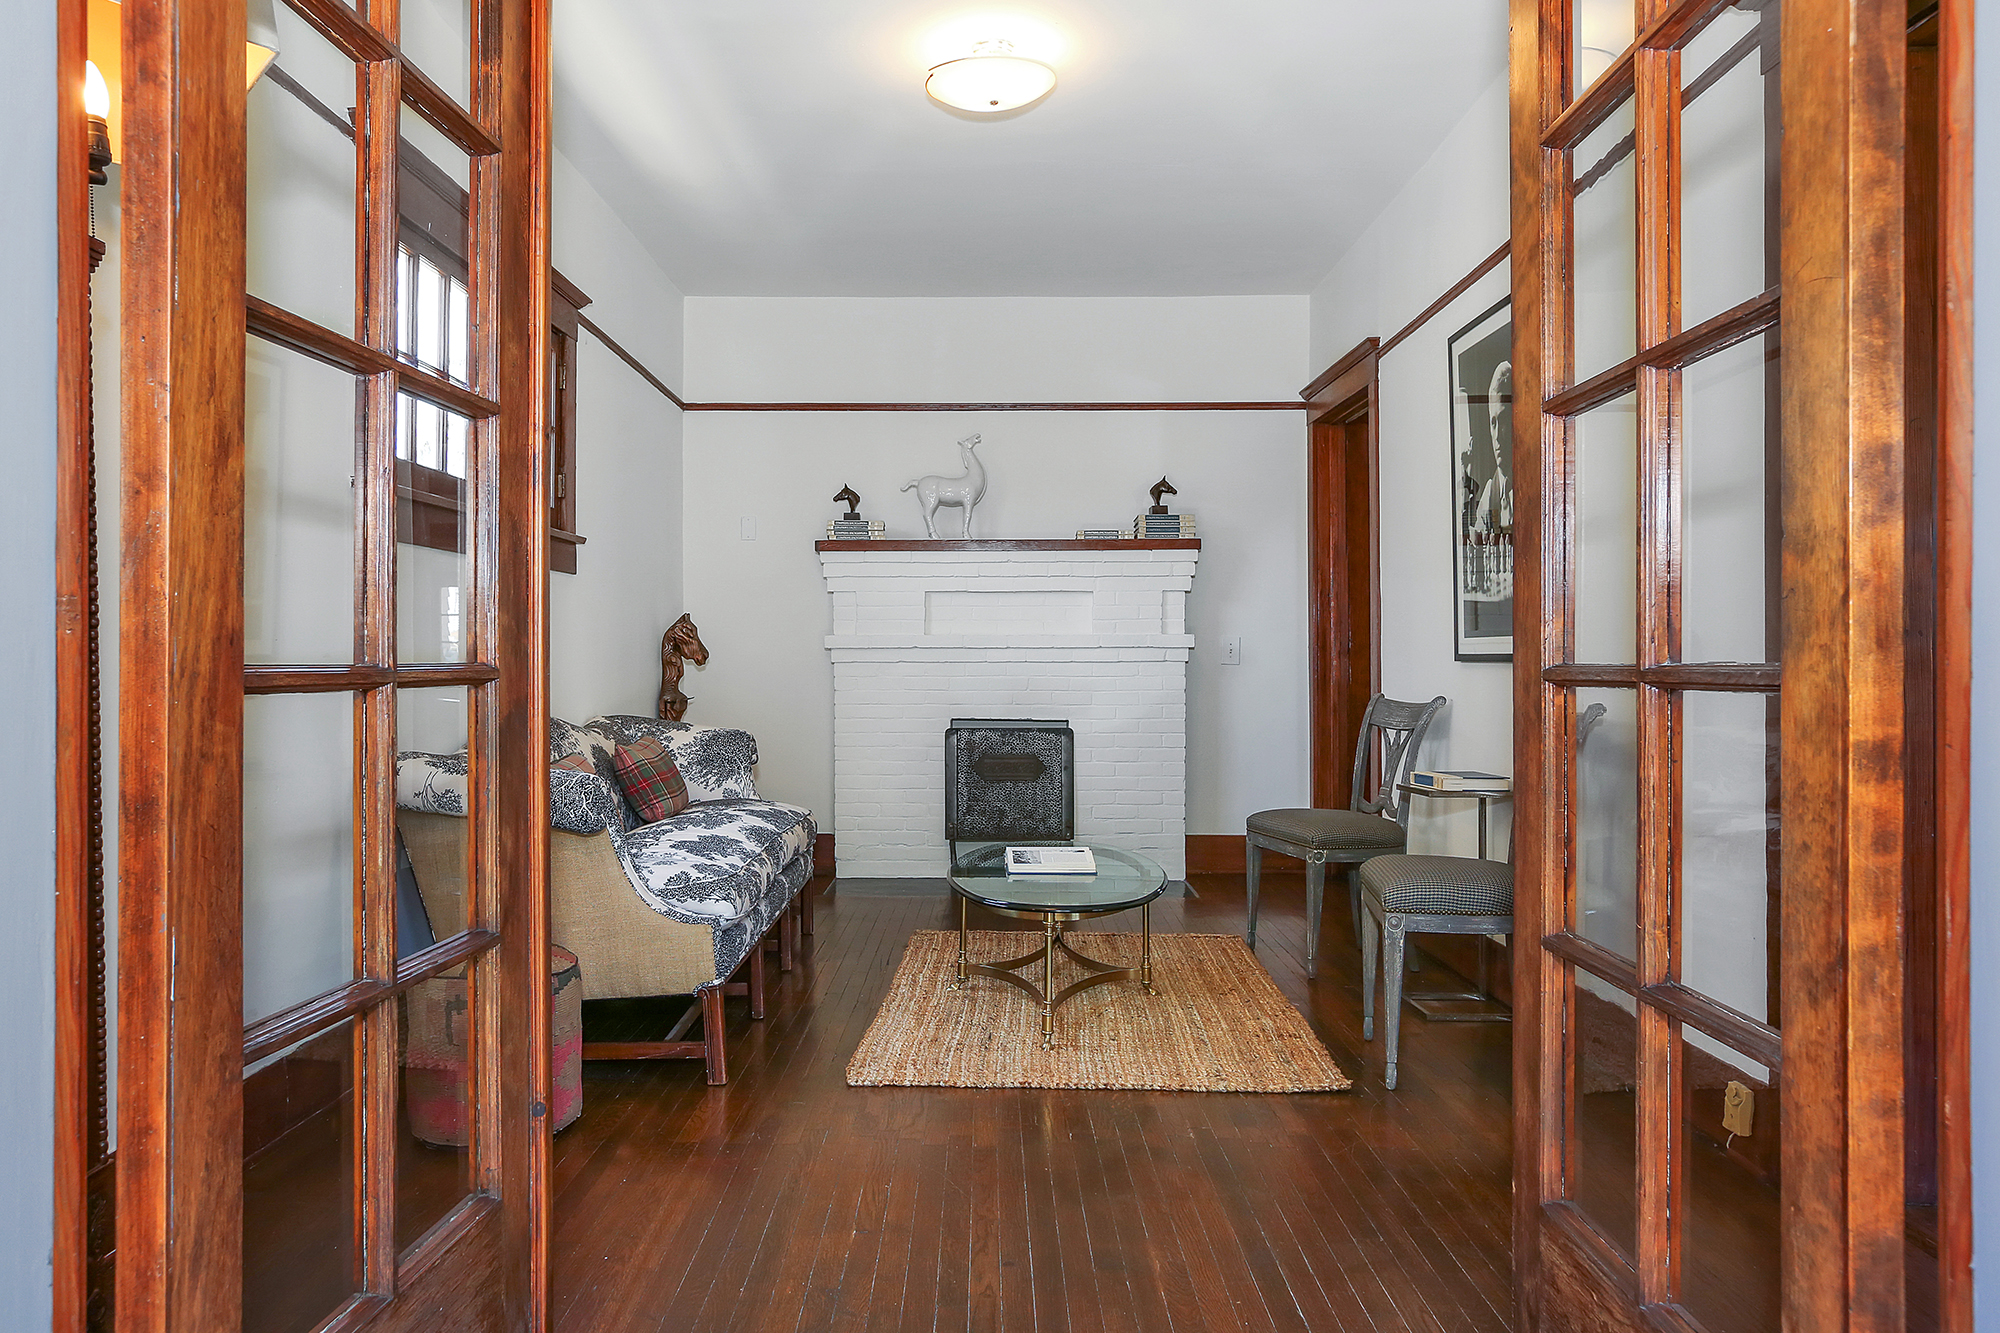 If you need an extra room for an office, studio, gym, or just a private man-cave, this home has it. In fact, it has two! Pictured above is a private library/studio, with French doors that lead out to the back porch. And below…